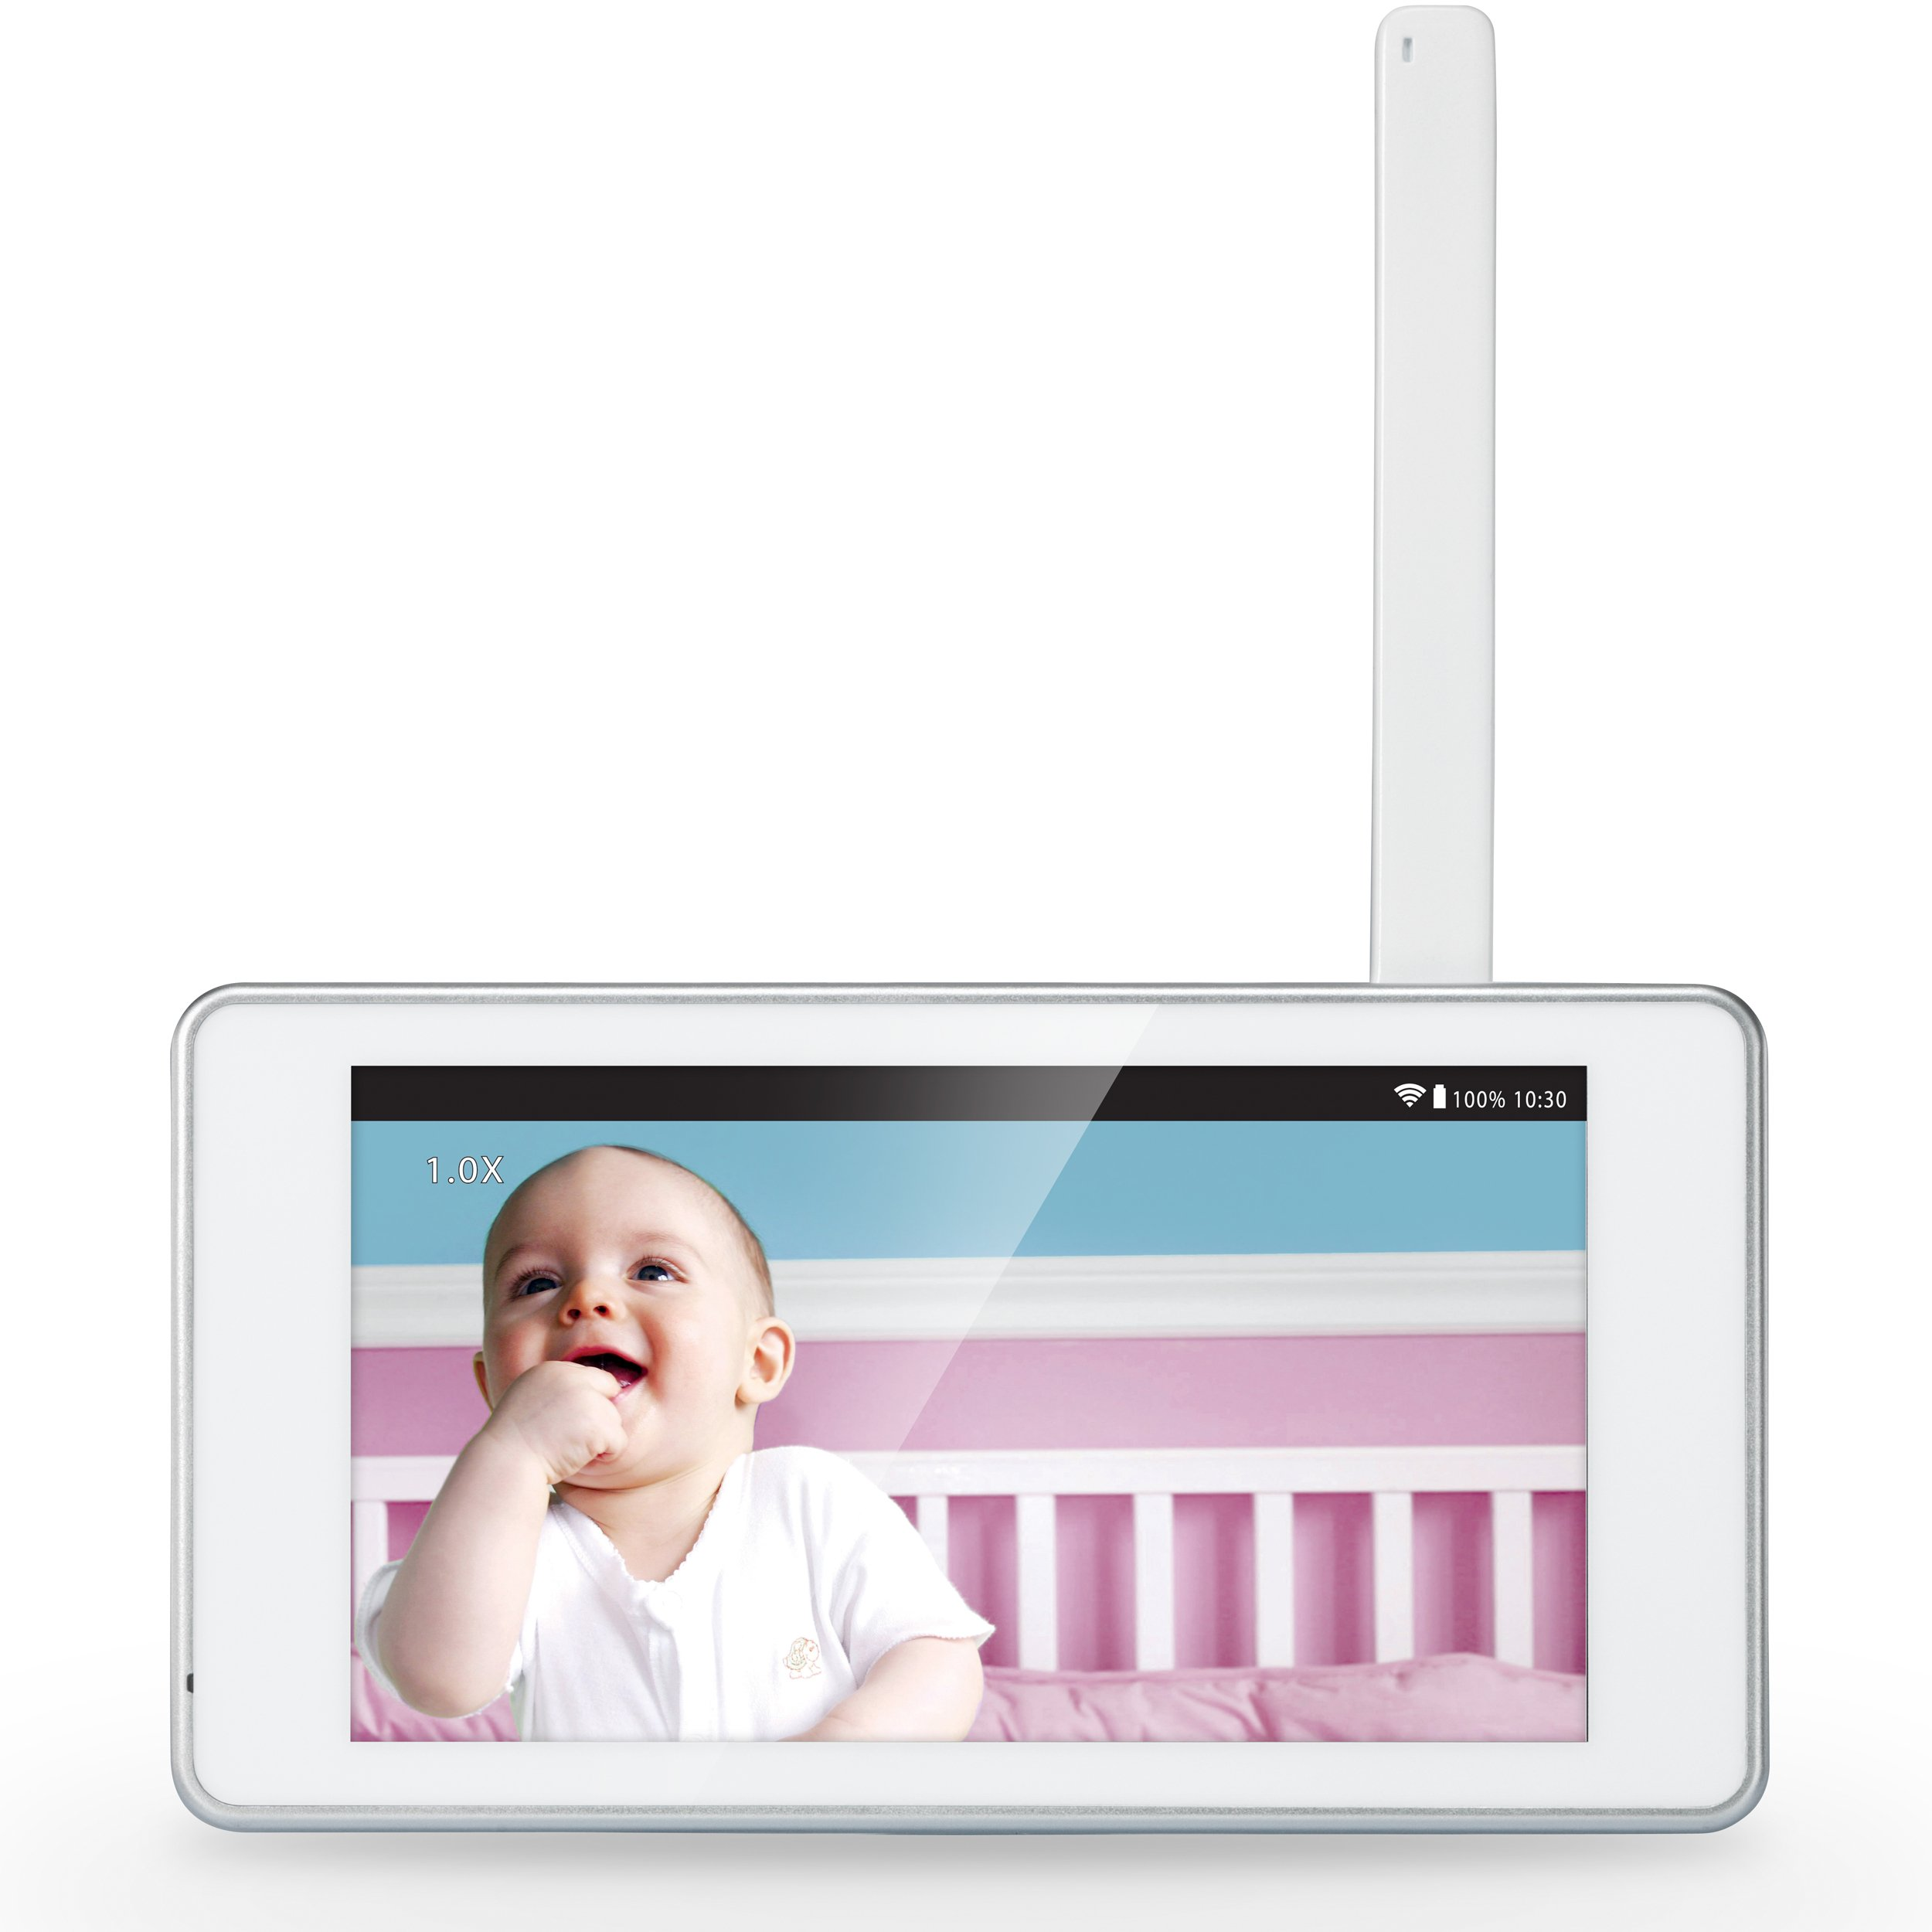 VTech VM991 Wireless WiFi Video Baby Monitor with Remote Access App, 5-inch Touch Screen, Remote Access Pan, Tilt & Zoom, Motion Alerts & Support for up to 10 Cameras by VTech (Image #10)